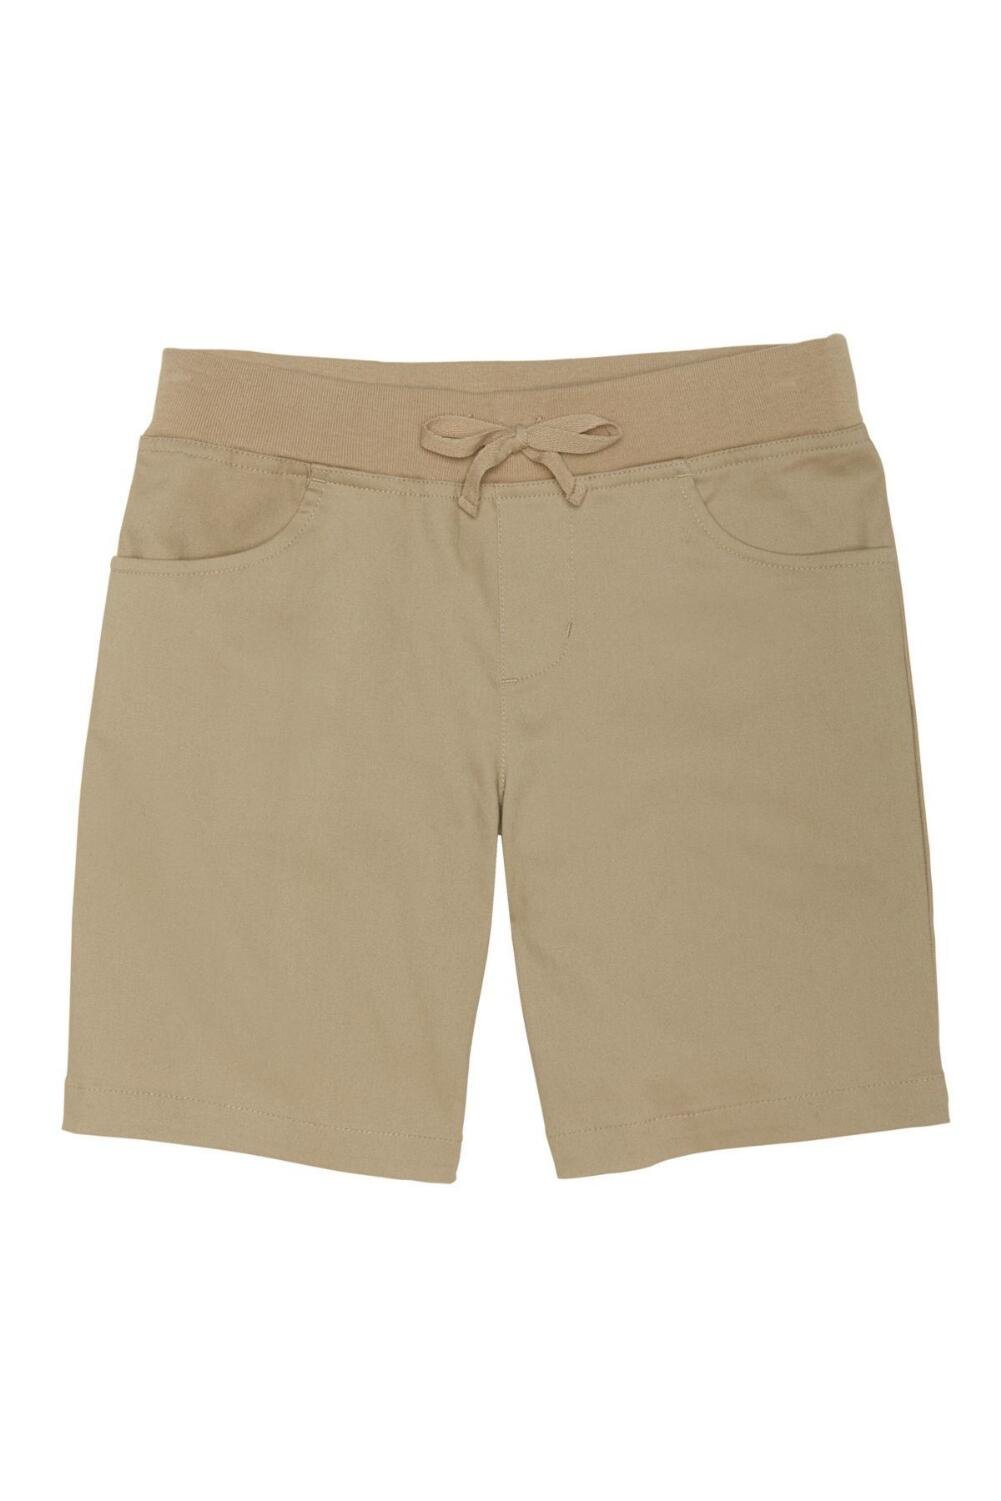 French Toast Big Girls' Stretch Pull-on Tie Front Short, Khaki, 7